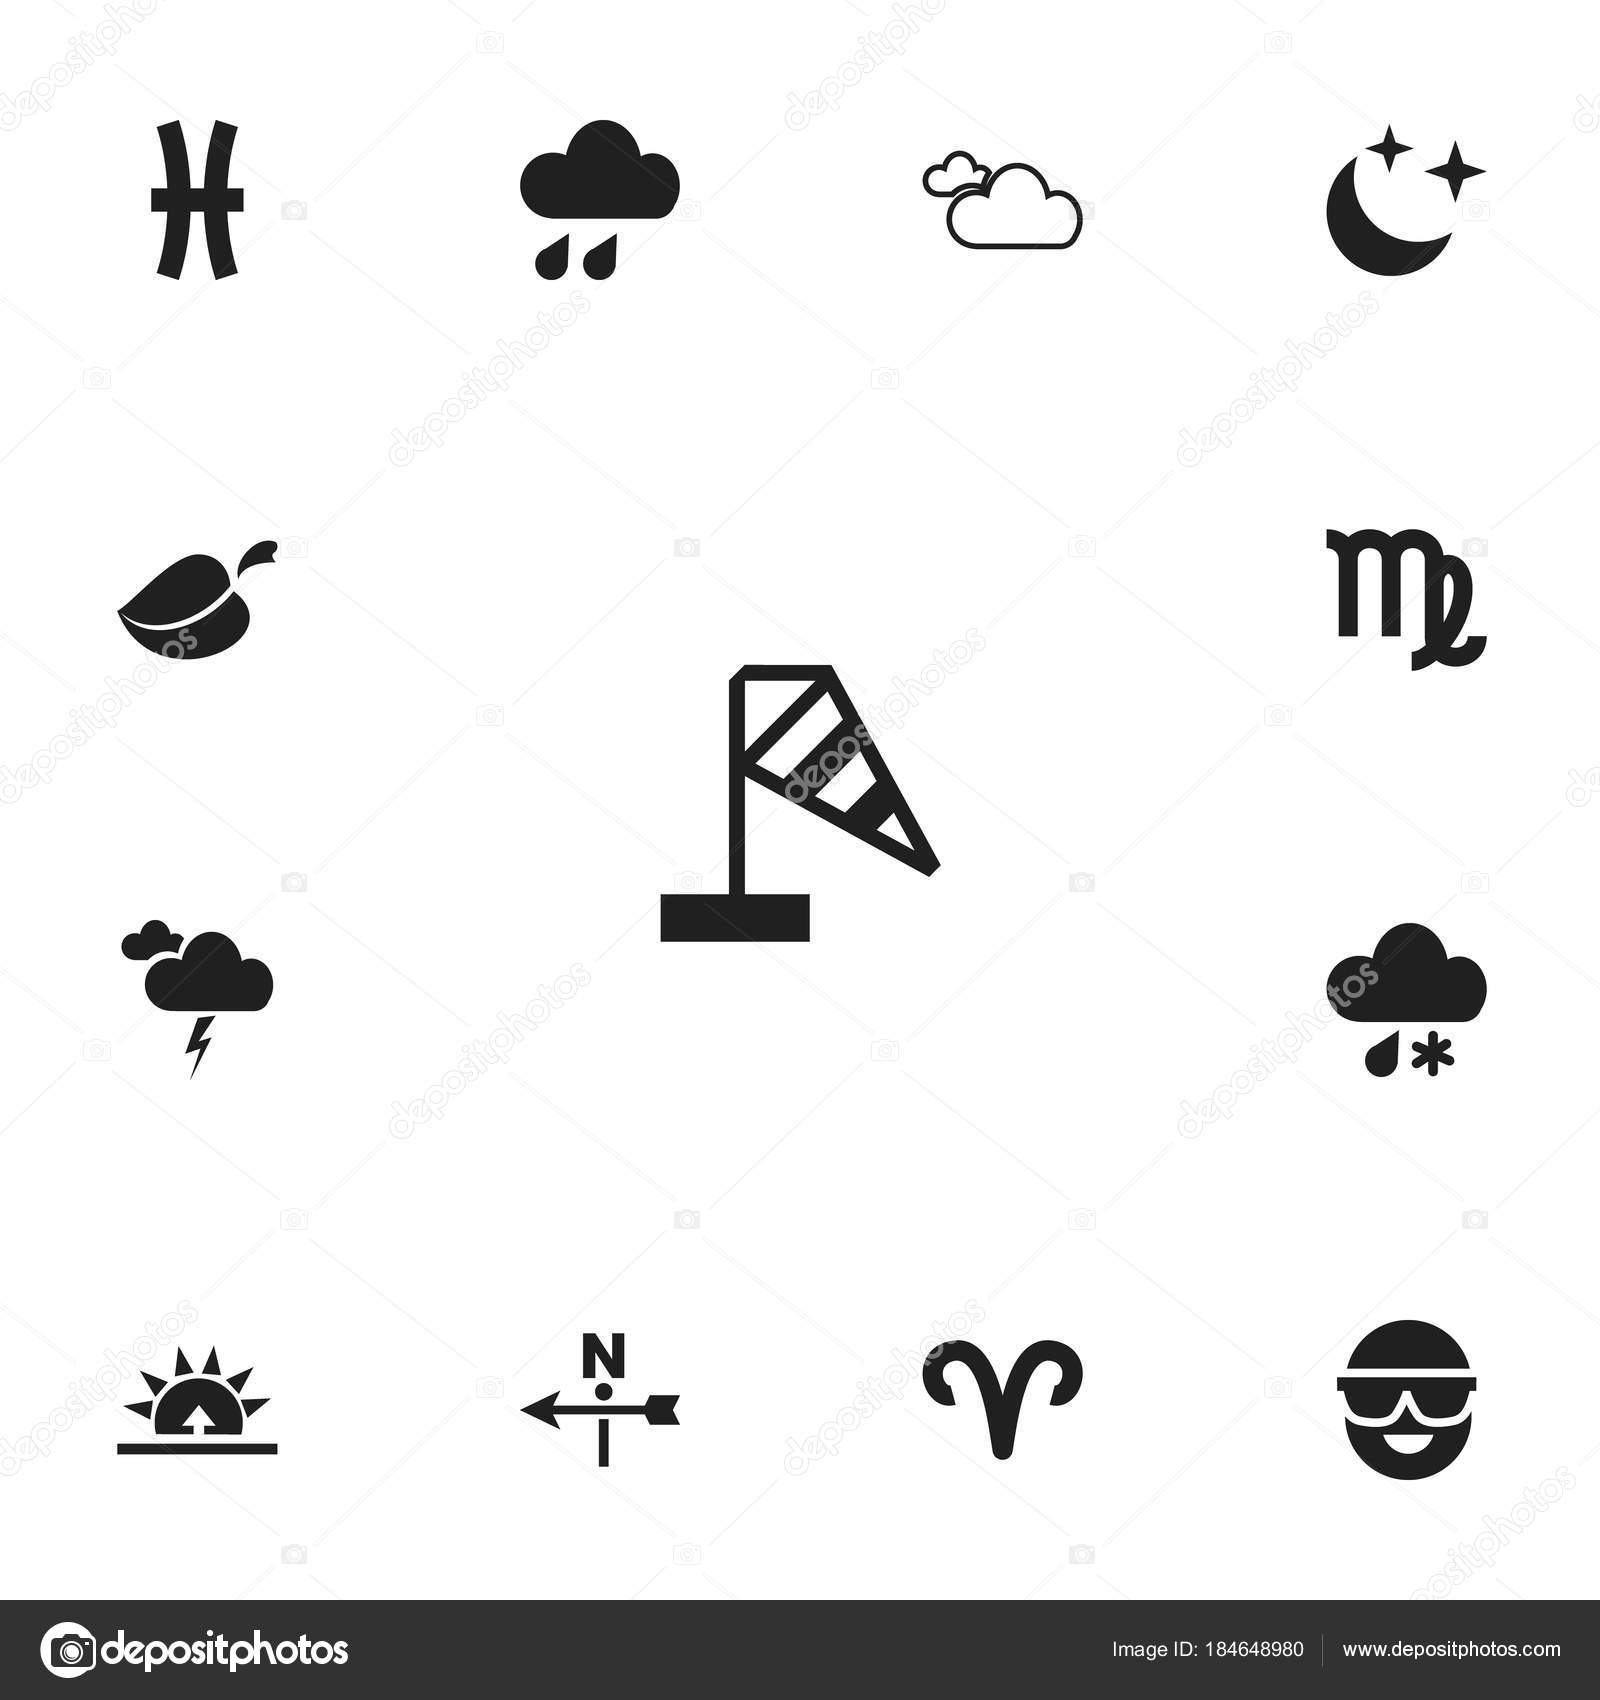 Symbol of virgo image collections symbol and sign ideas virgo symbols images image collections symbol and sign ideas set of 13 editable air icons includes buycottarizona